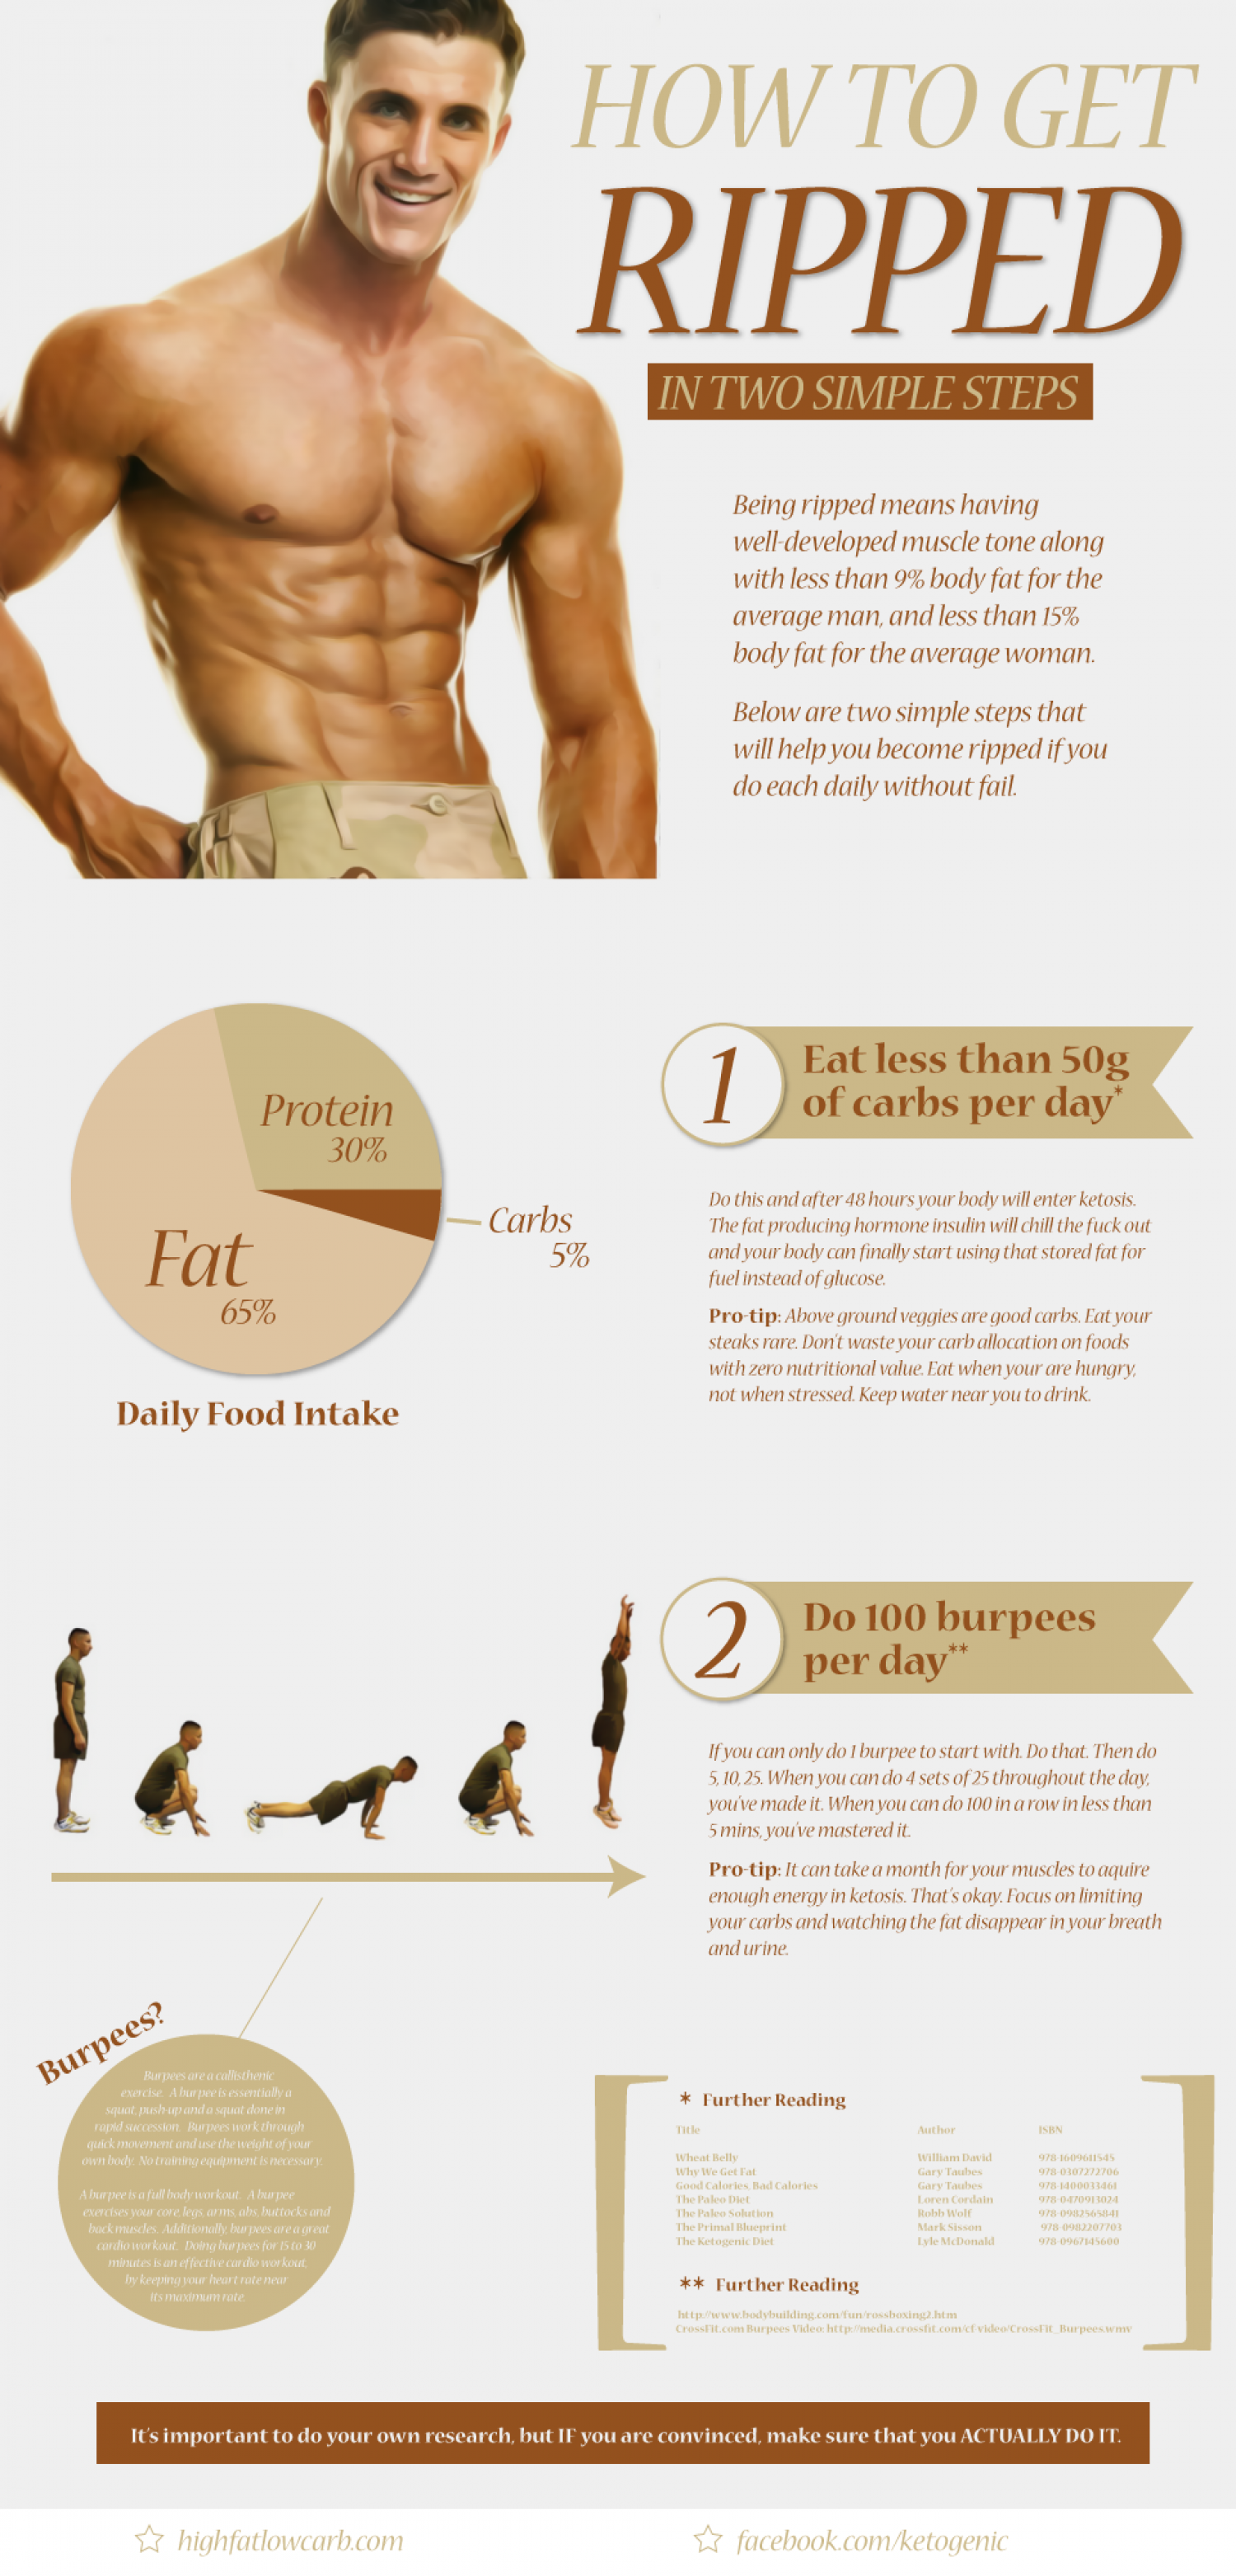 How To Get Ripped in Two Simple Steps Infographic